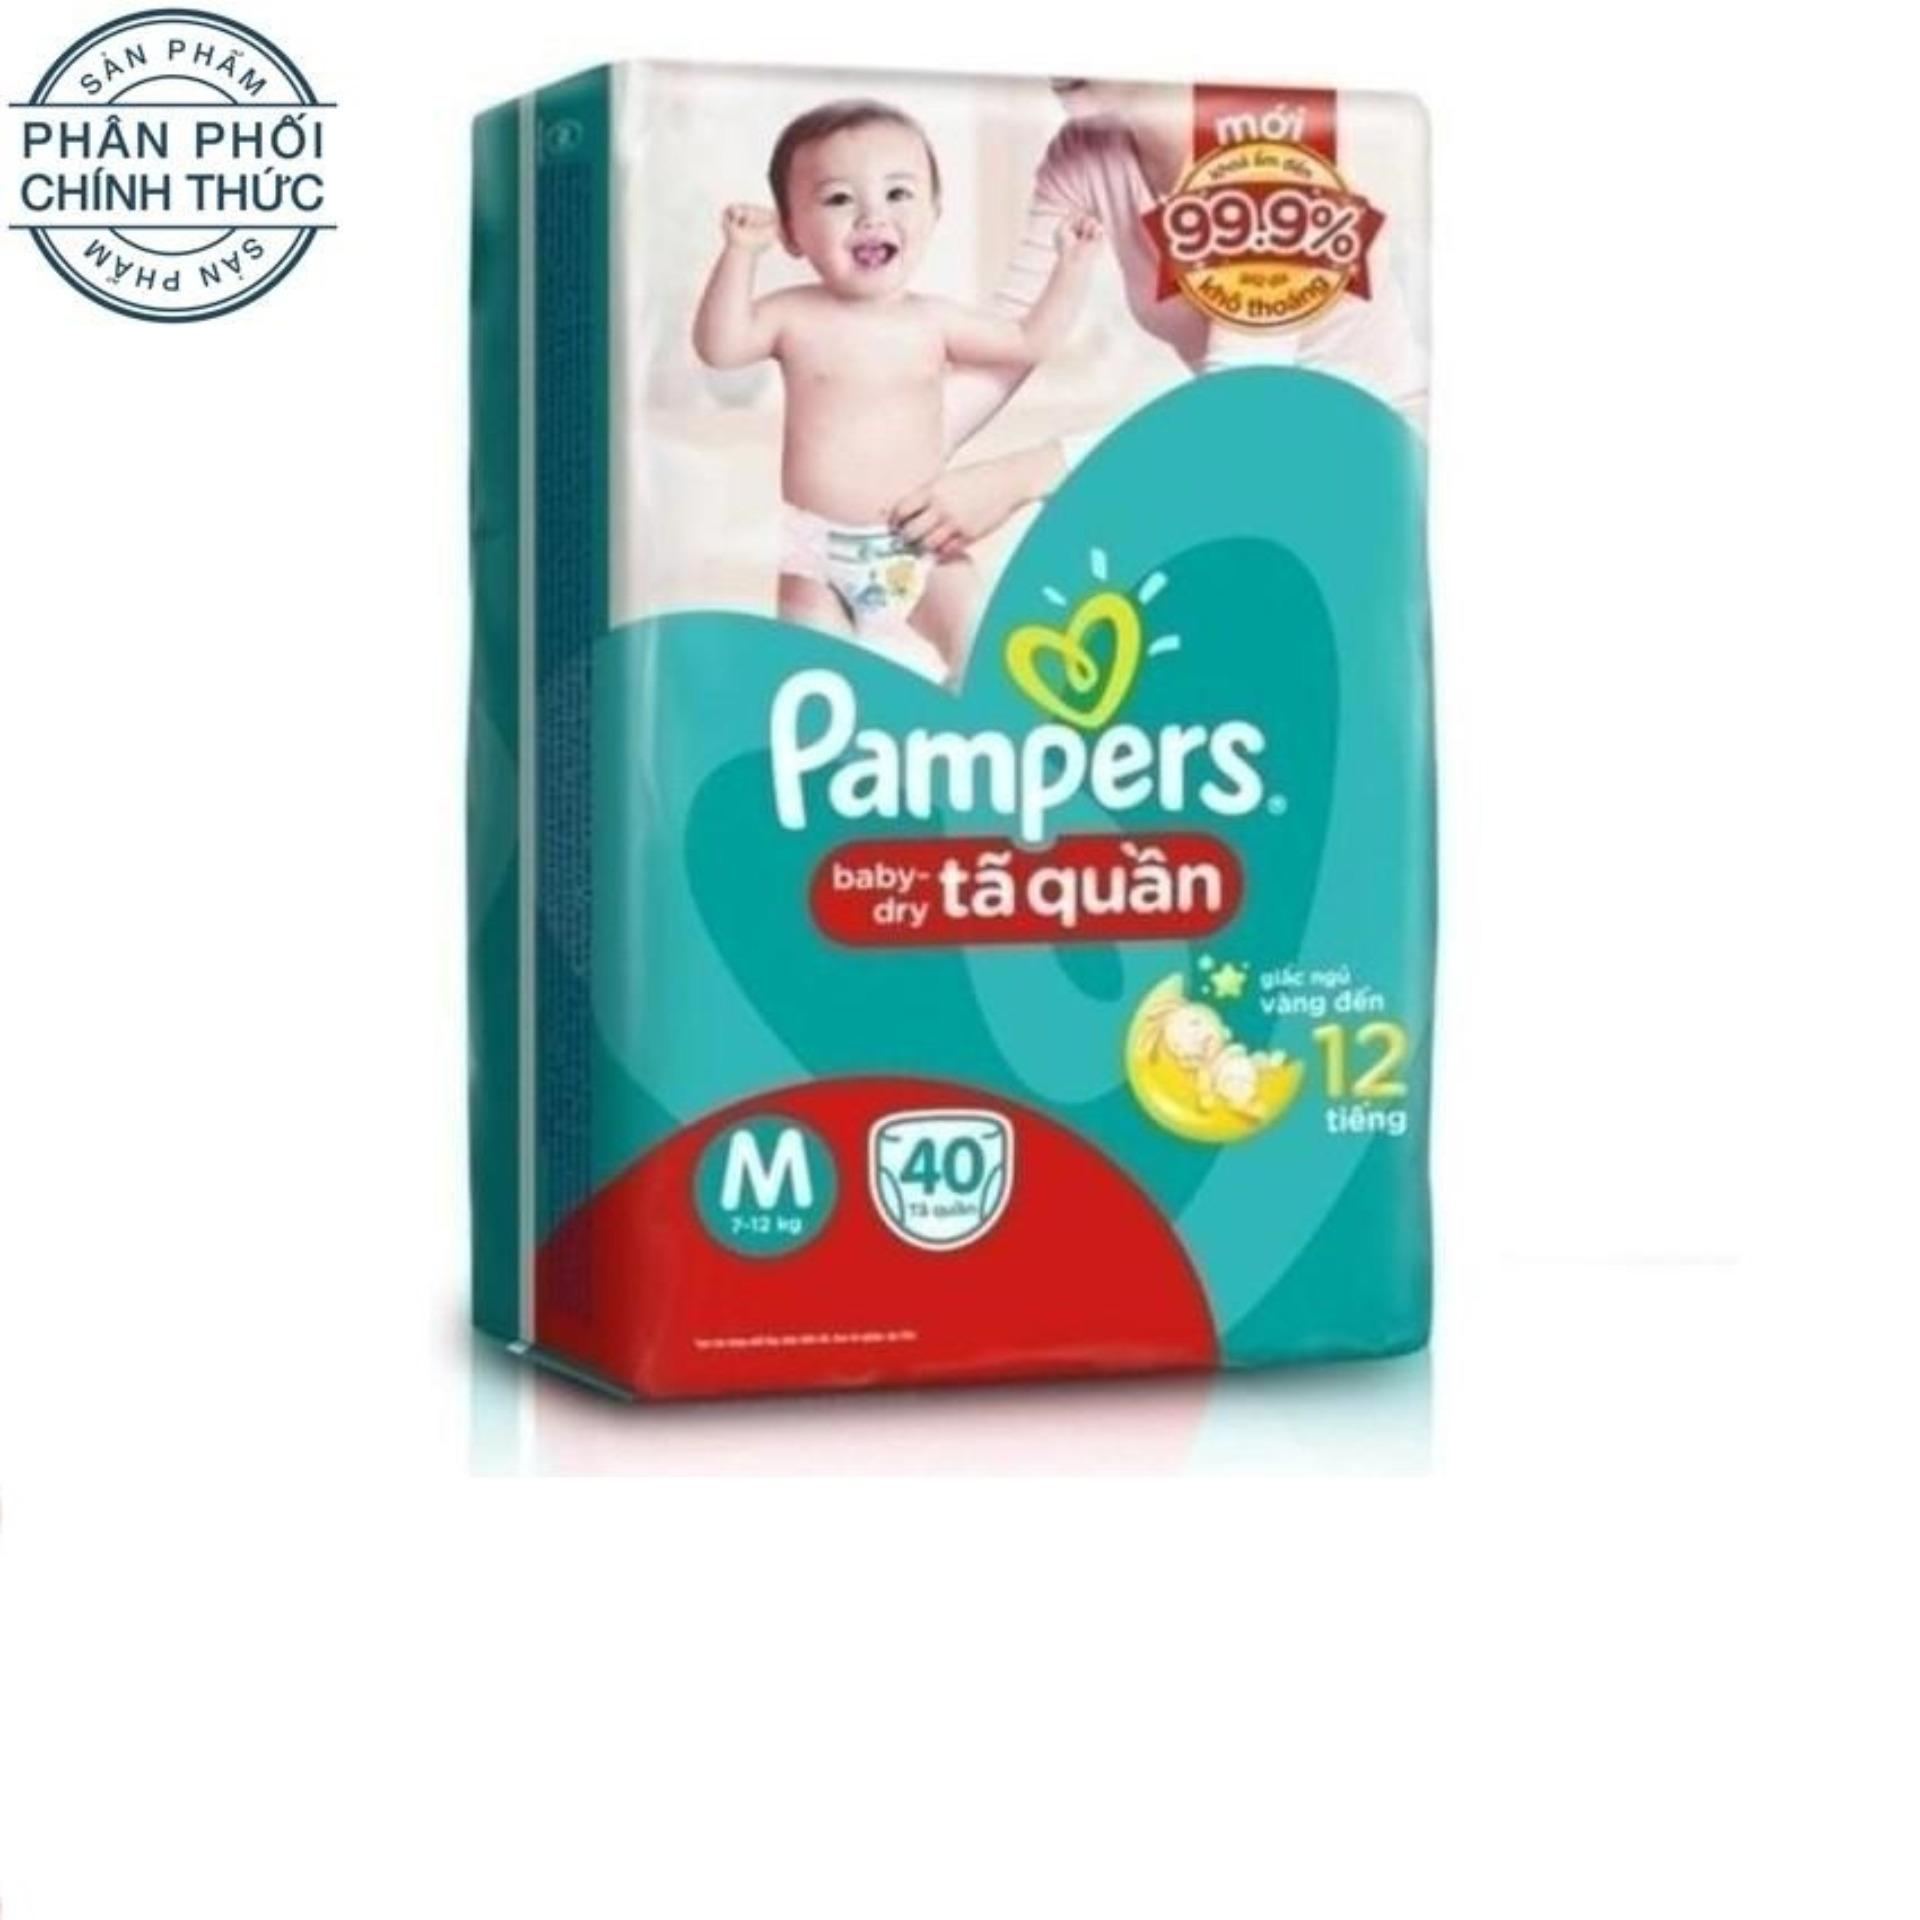 Bán Ta Quần Pampers Size M 40 Miếng 7 12Kg Pampers